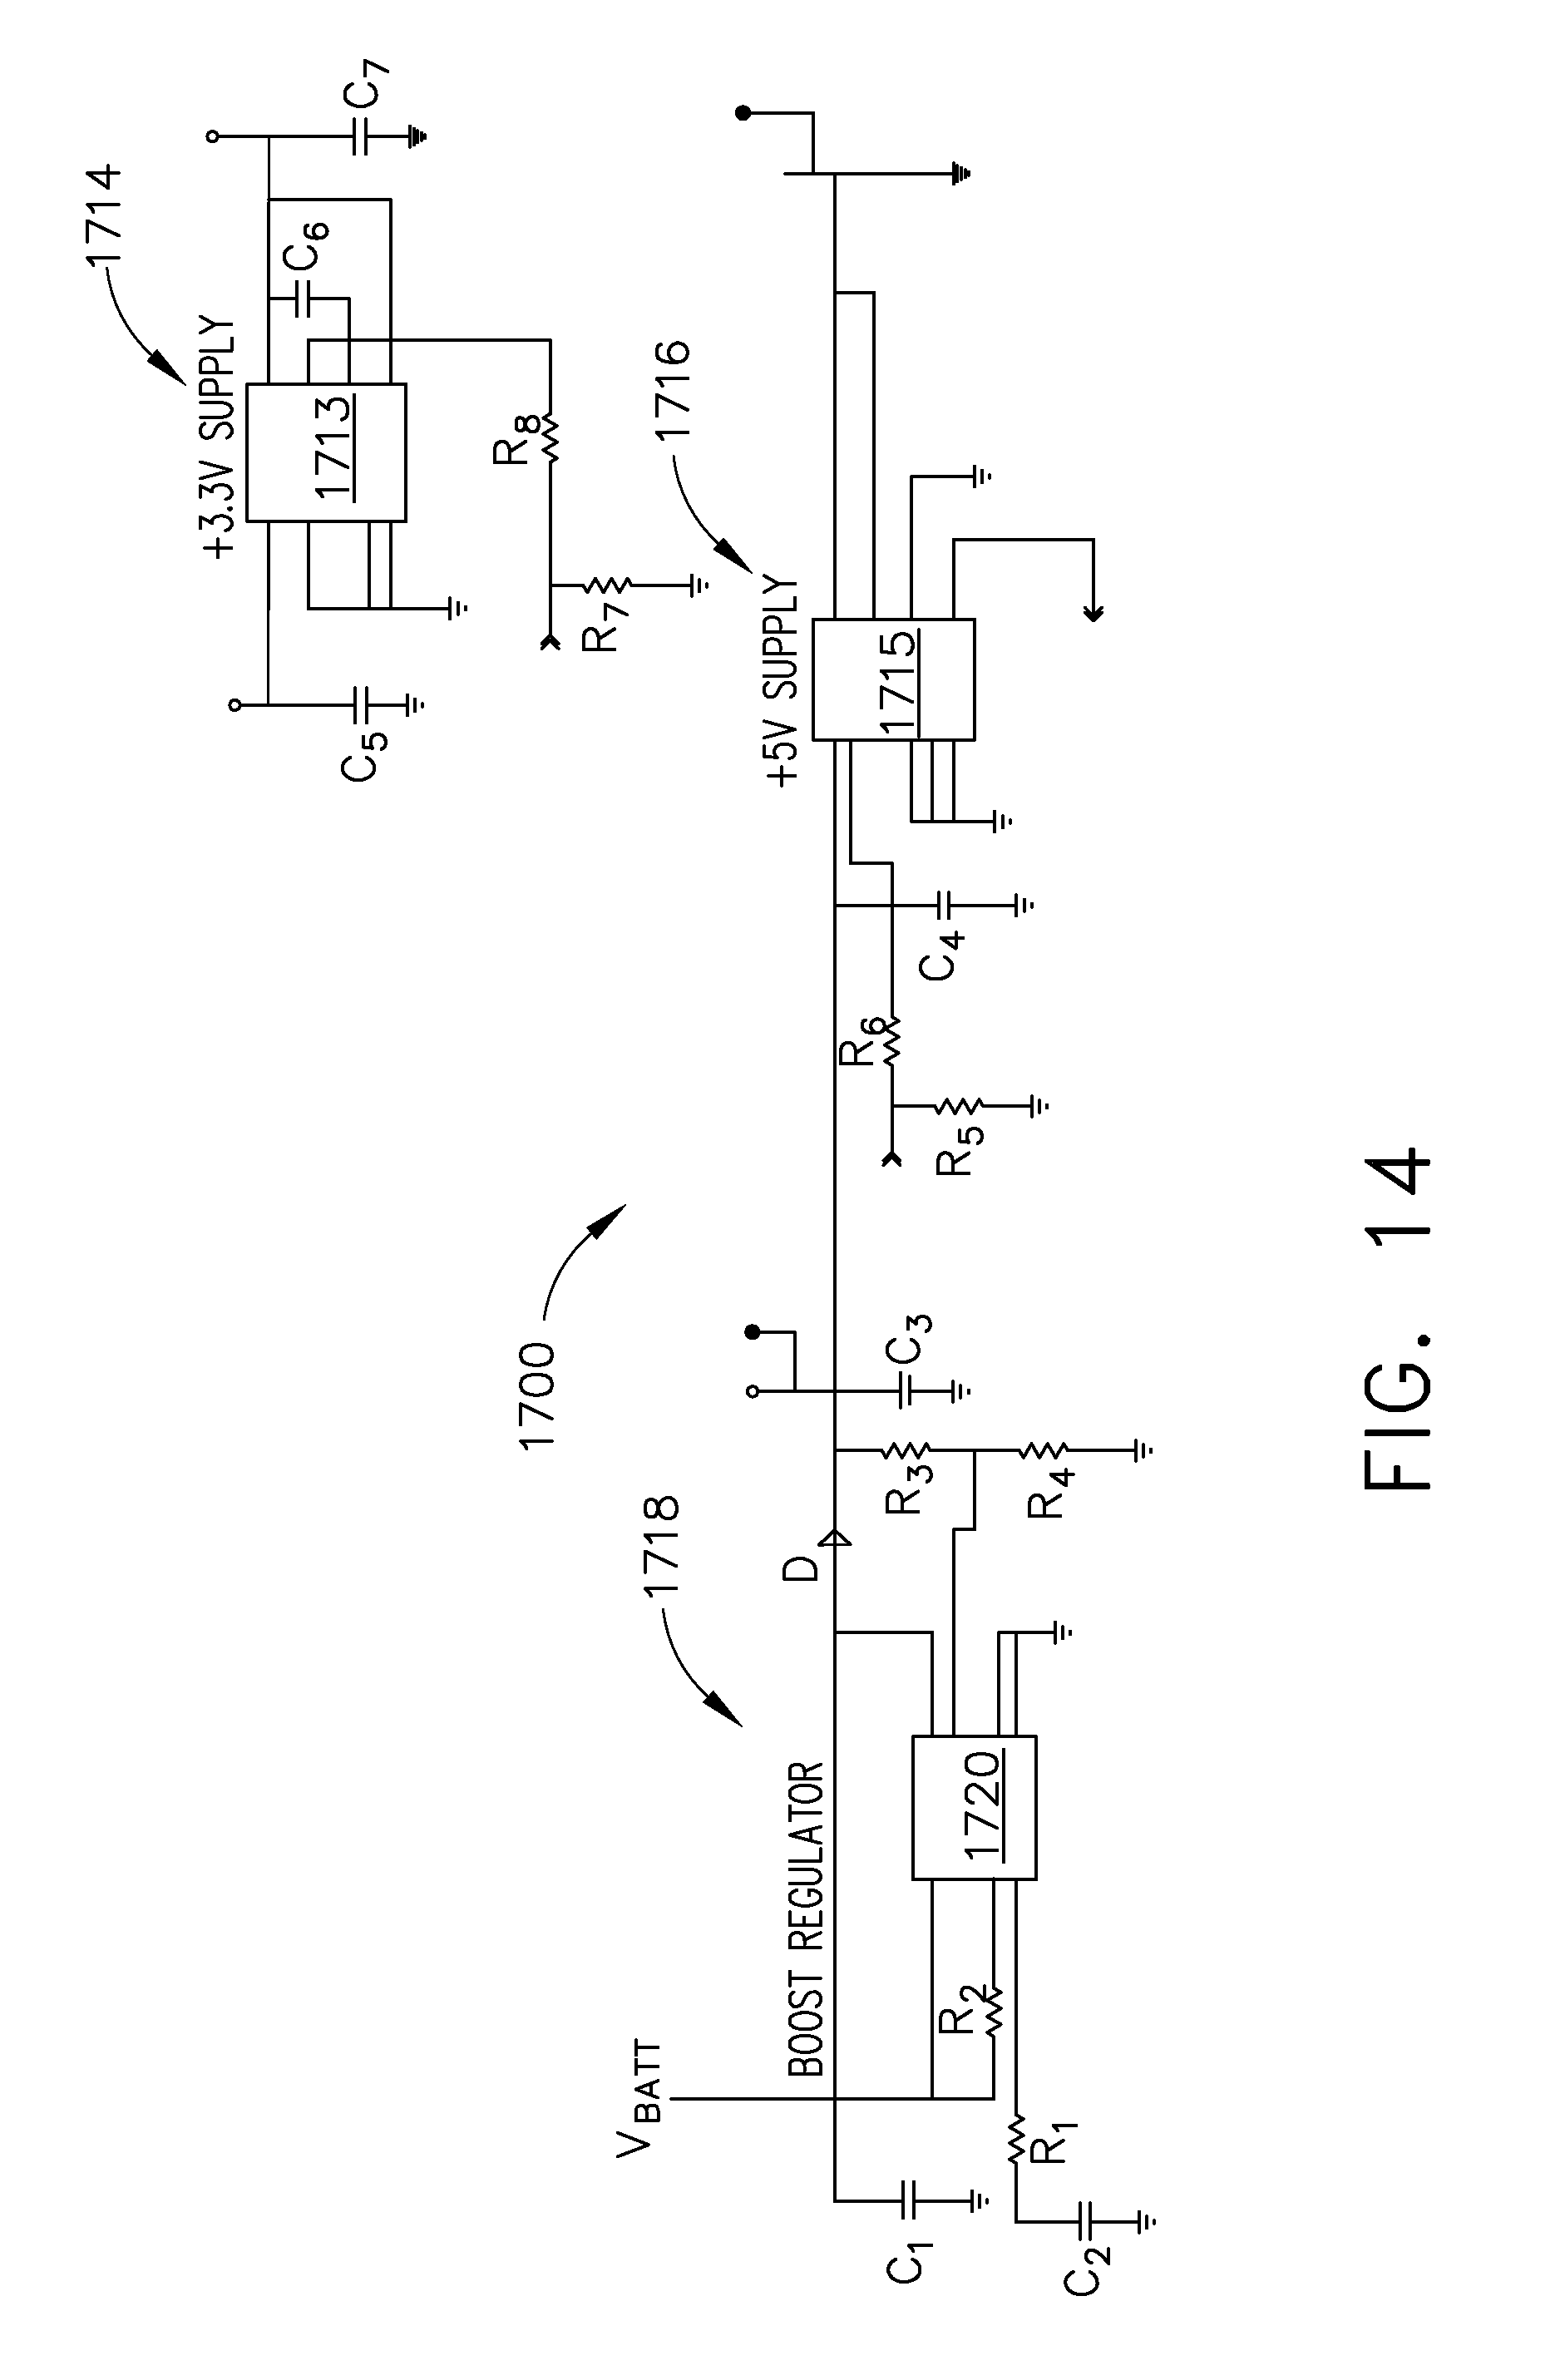 Us20150280424a1 Power Management Through Segmented Circuit And Usb 2036 46 Wiring Diagram Variable Voltage Protection Google Patents